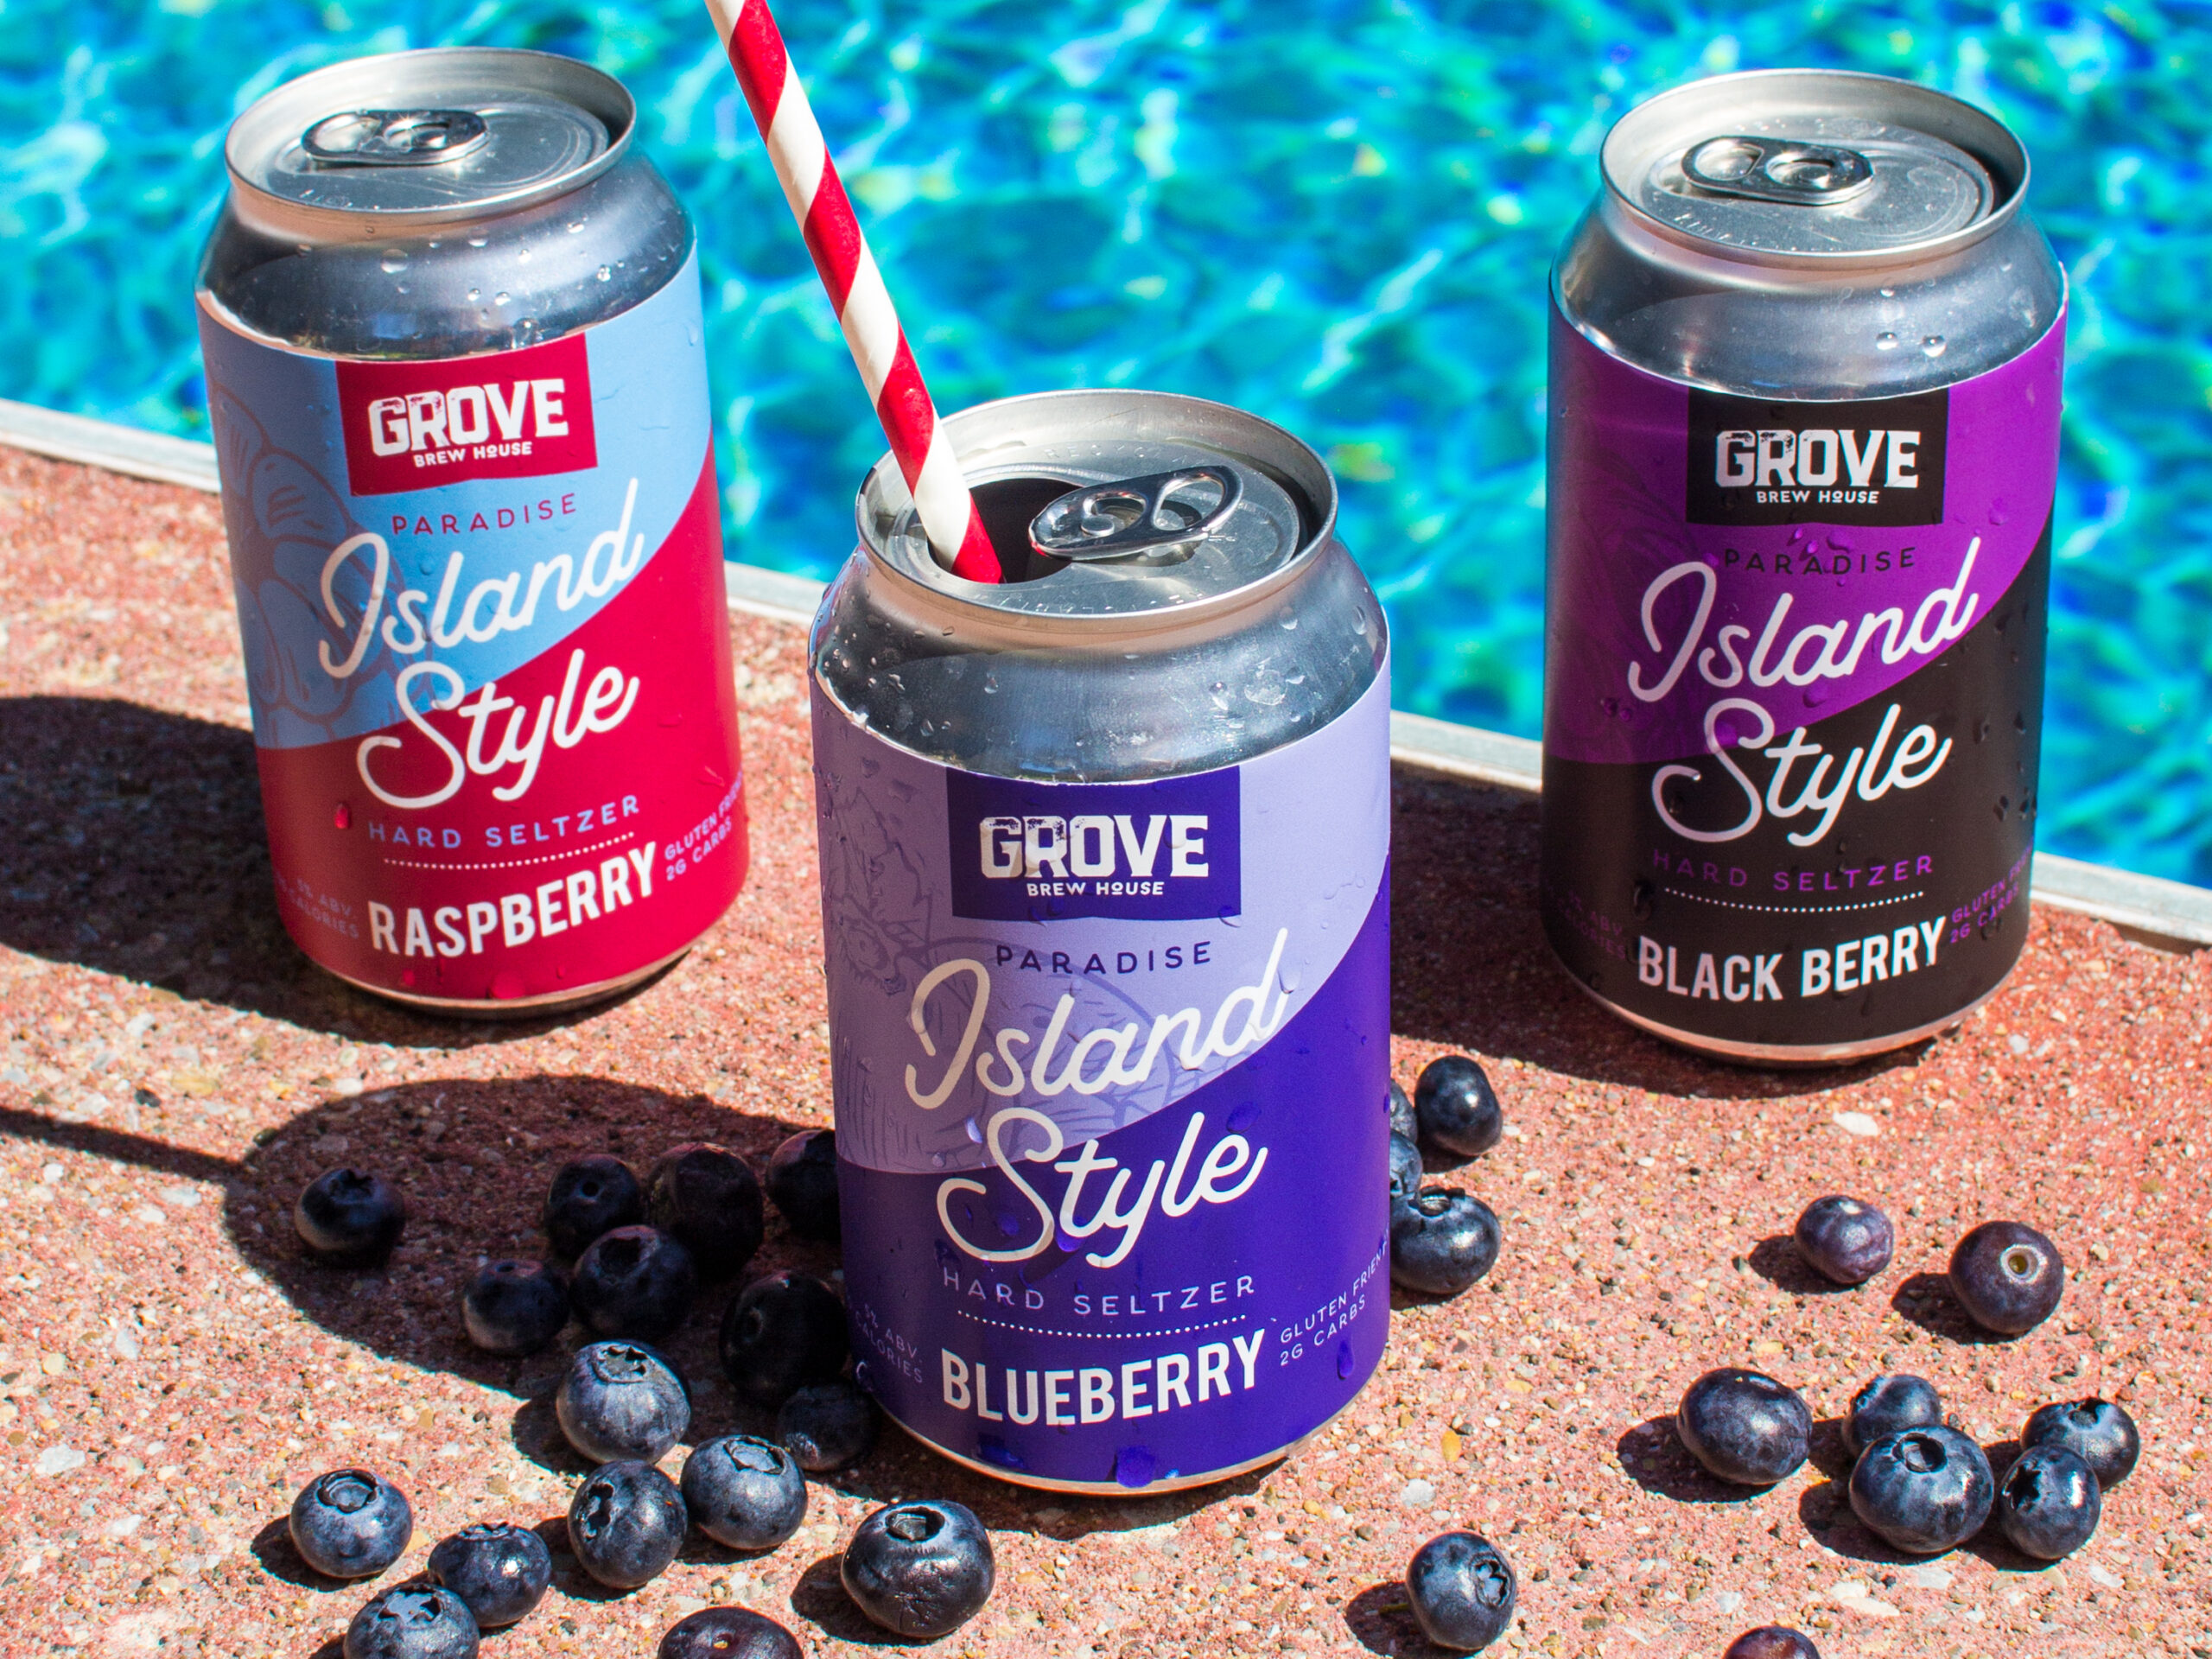 Island Style hard seltzer from Grove Brew House in Kingsville, Ontario.